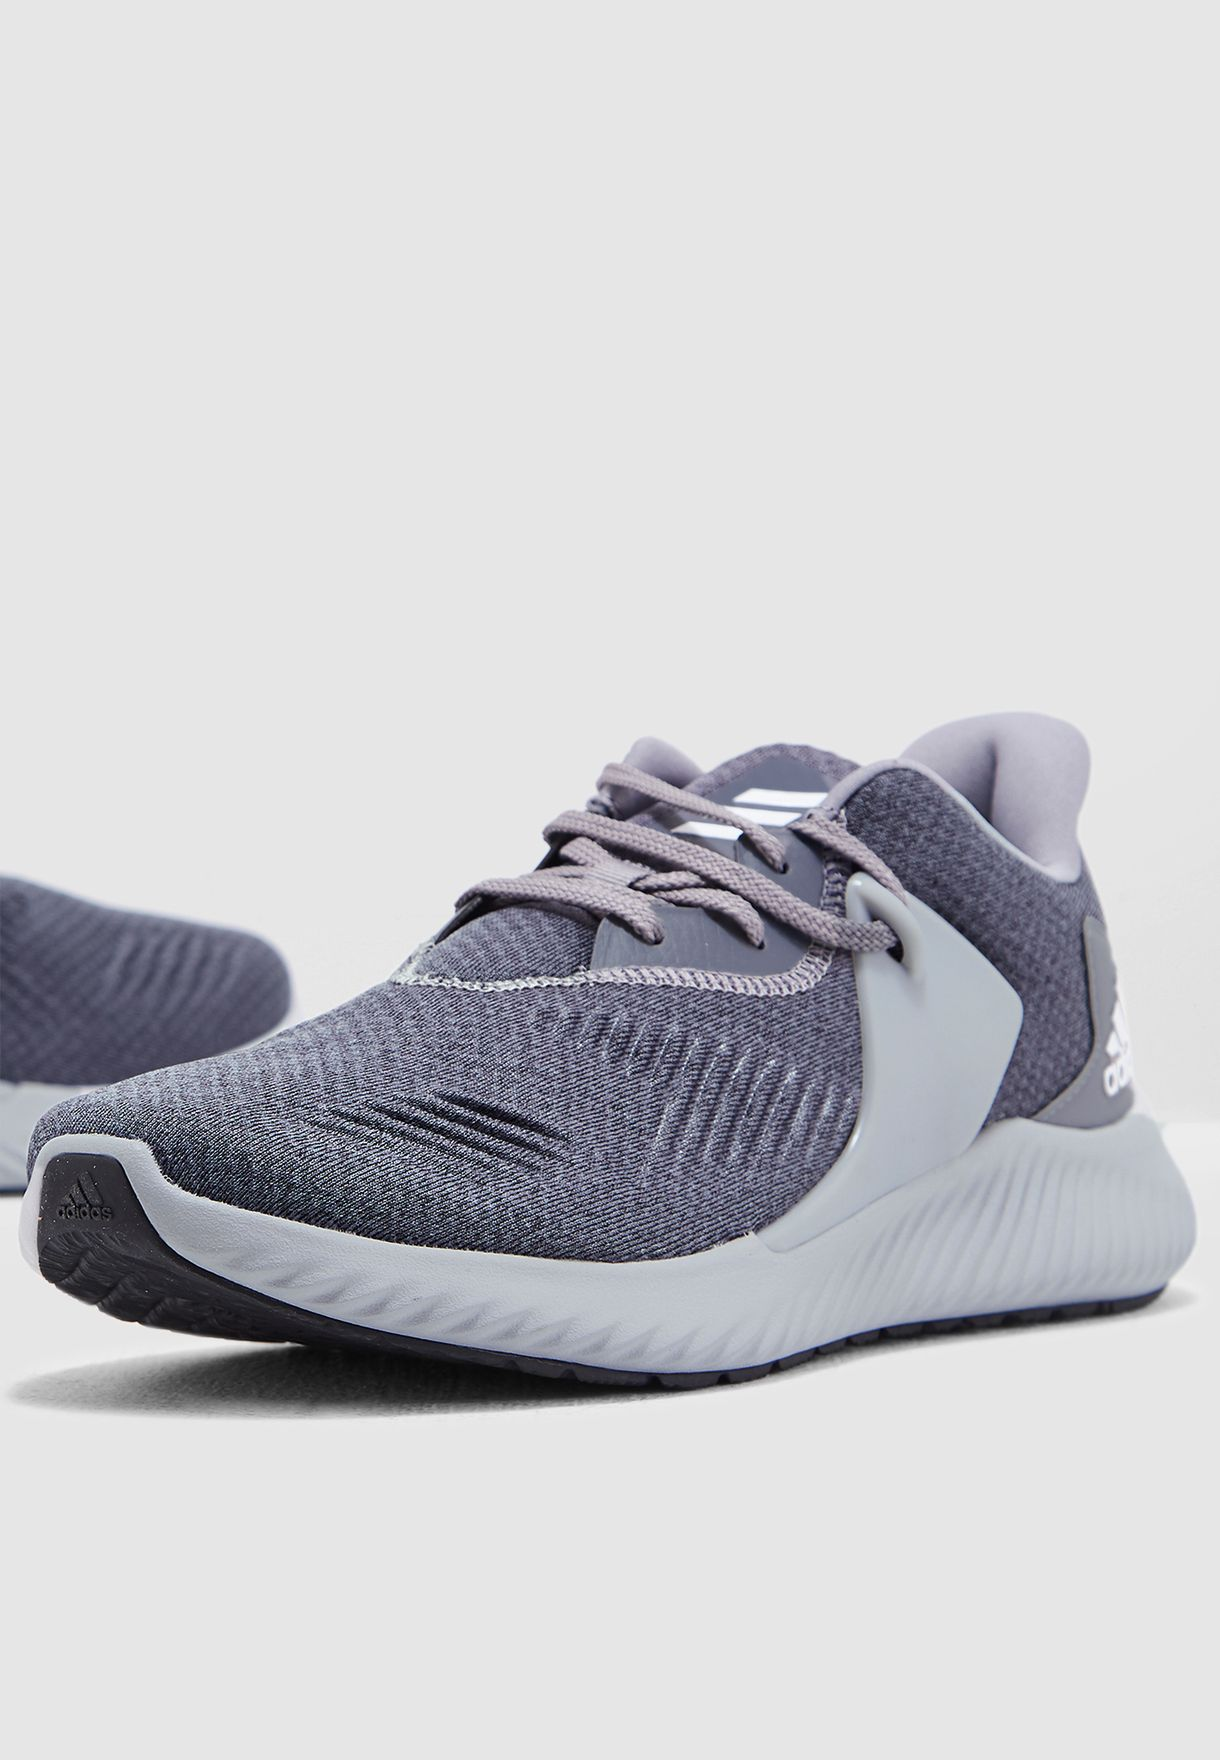 8bf80c212aa20 Shop adidas grey Alphabounce RC 2 M D96525 for Men in Saudi ...